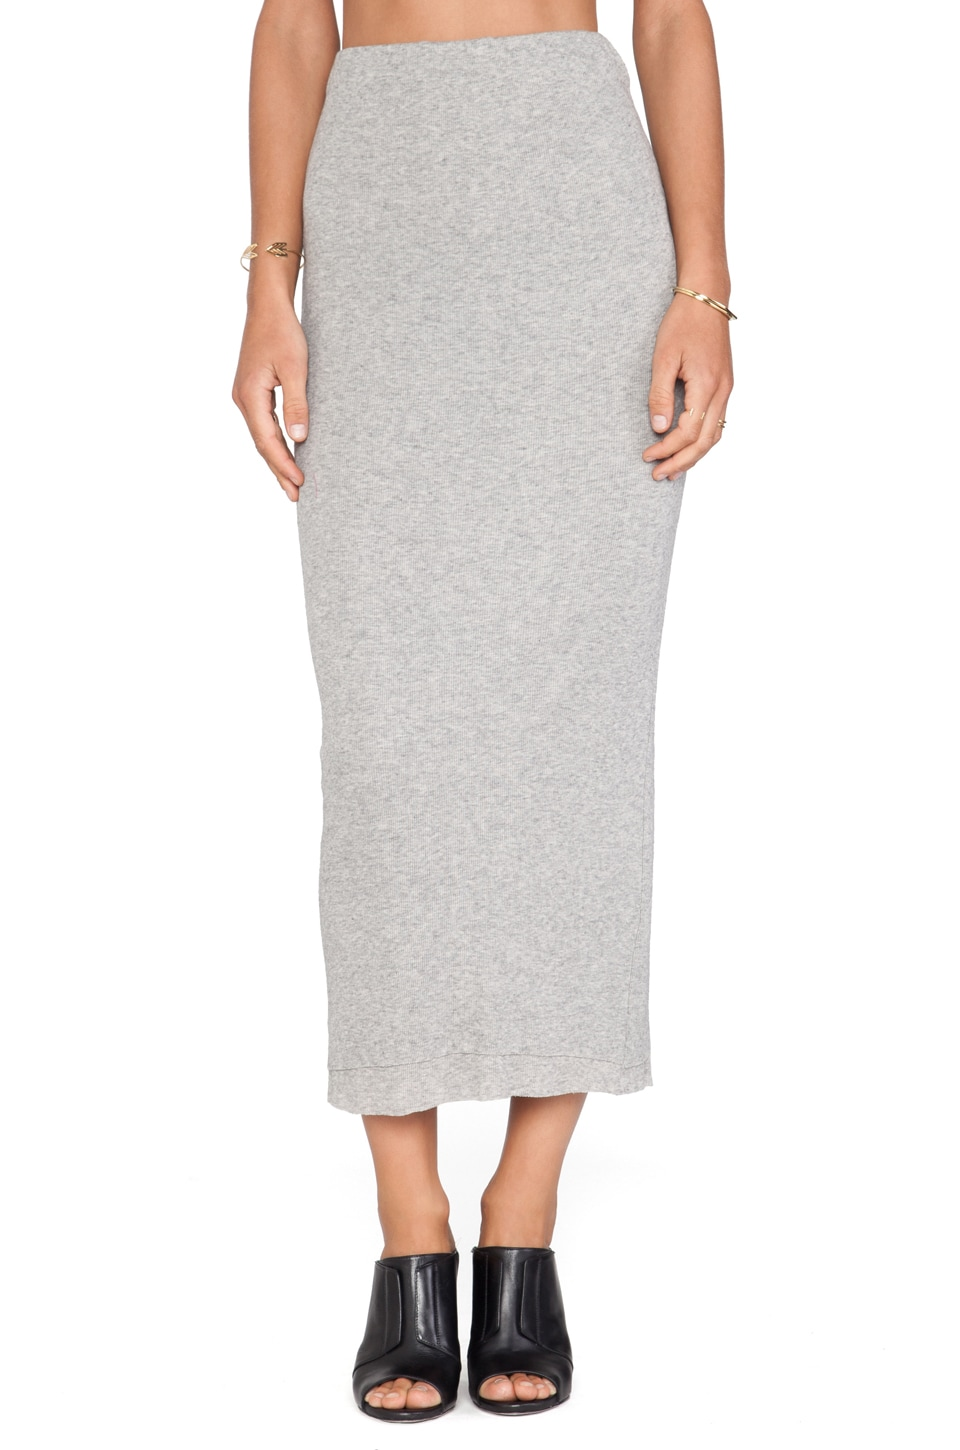 James Perse Long Cashmere Rib Skirt in Heather Grey